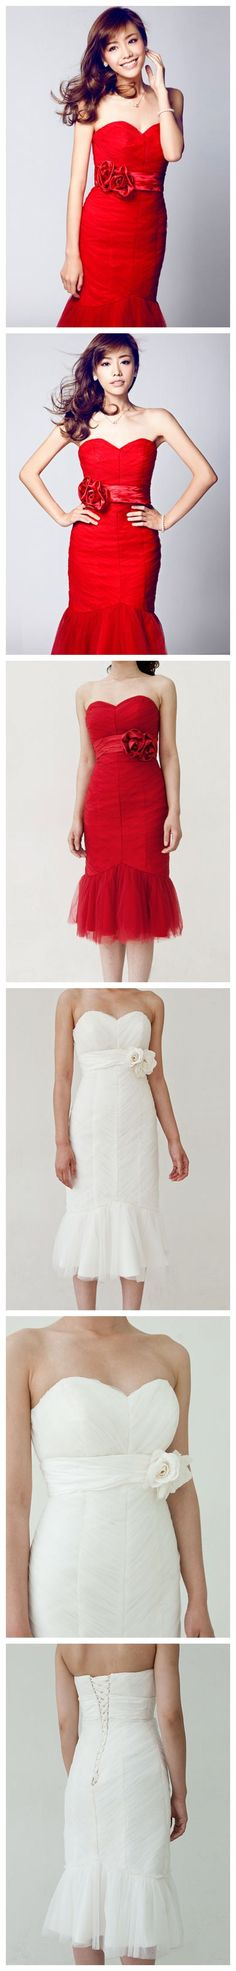 Trumpet / Mermaid Sweetheart Lace-up Short Wedding Dress--LOVE this red dress.says it's a wedding dress, can't really see that, but would wear the red one to a wedding! Cute Wedding Dress, Fall Wedding Dresses, Colored Wedding Dresses, Bridesmaid Dresses, Bridesmaids, Dress Alterations, Mermaid Sweetheart, Looks Style, Dress Me Up